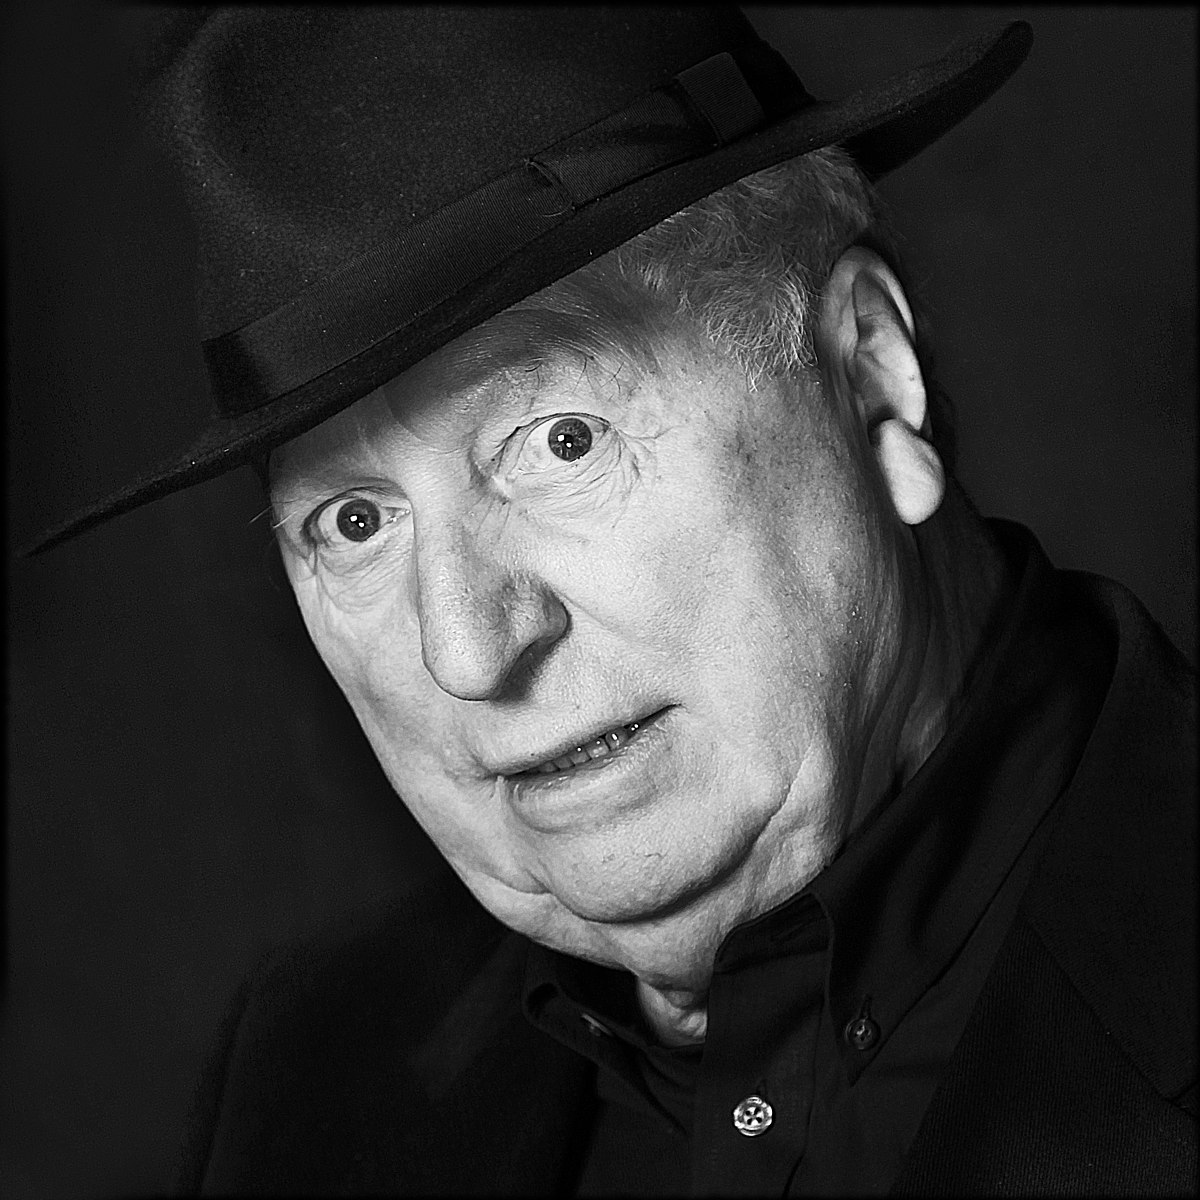 Tom Baker (born 1934)